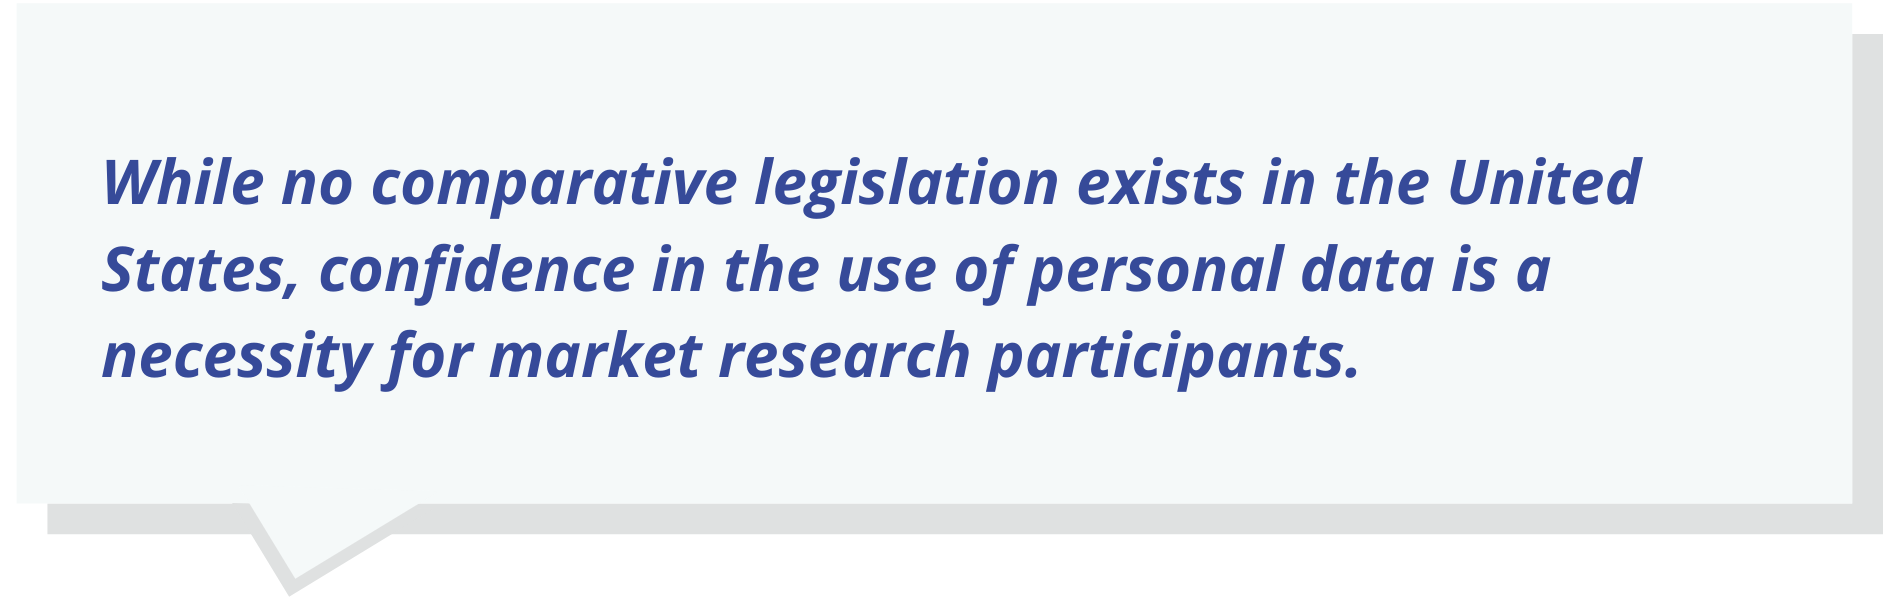 While no comparative legislation exists in the United States, confidence in the use of personal data is a necessity for market research participants.